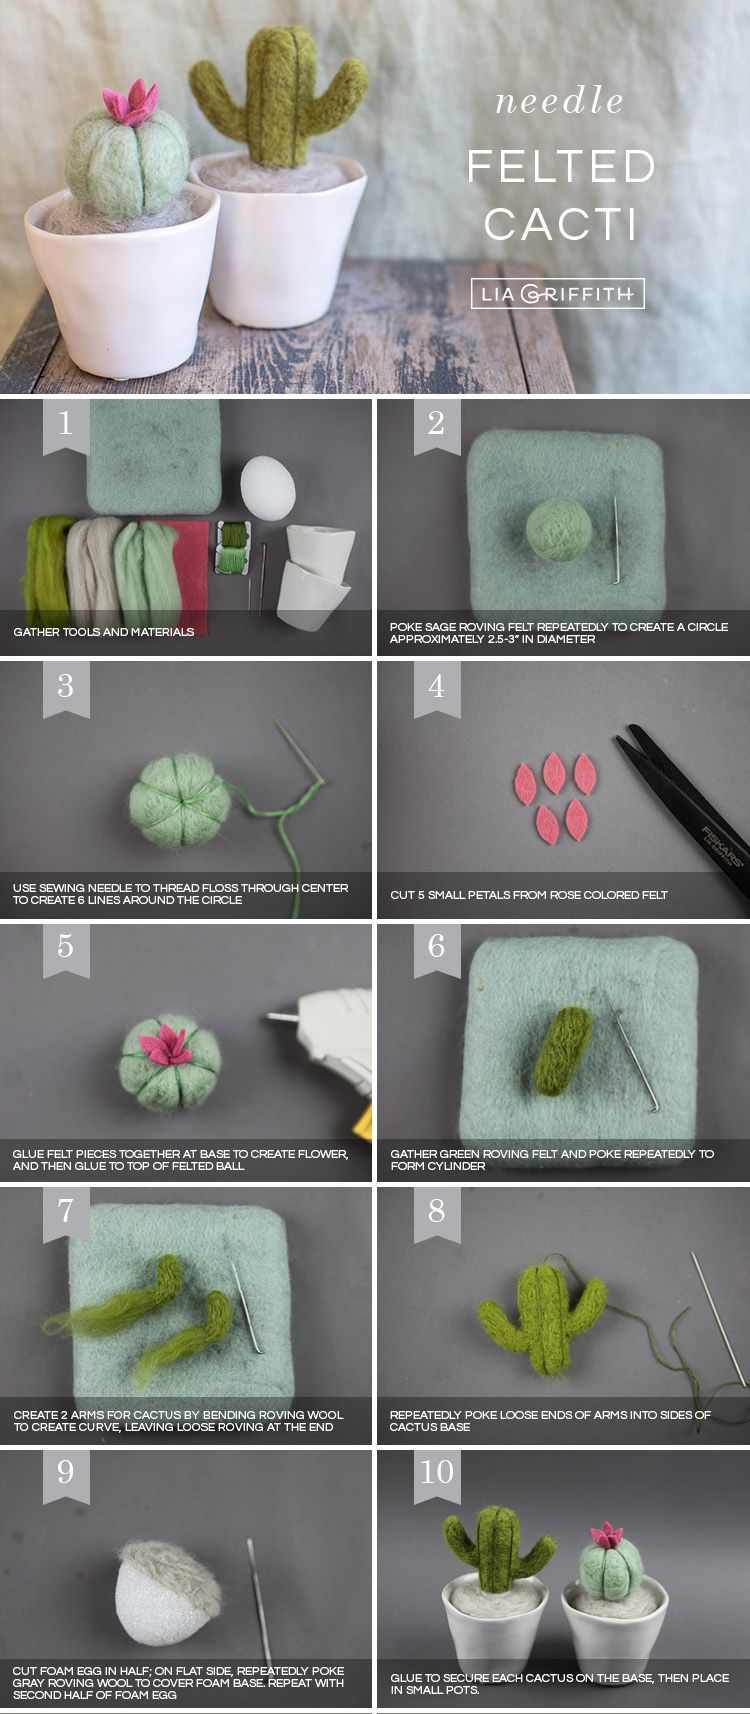 Make Your Own Felt Mini Cactus Plants #needlefelting